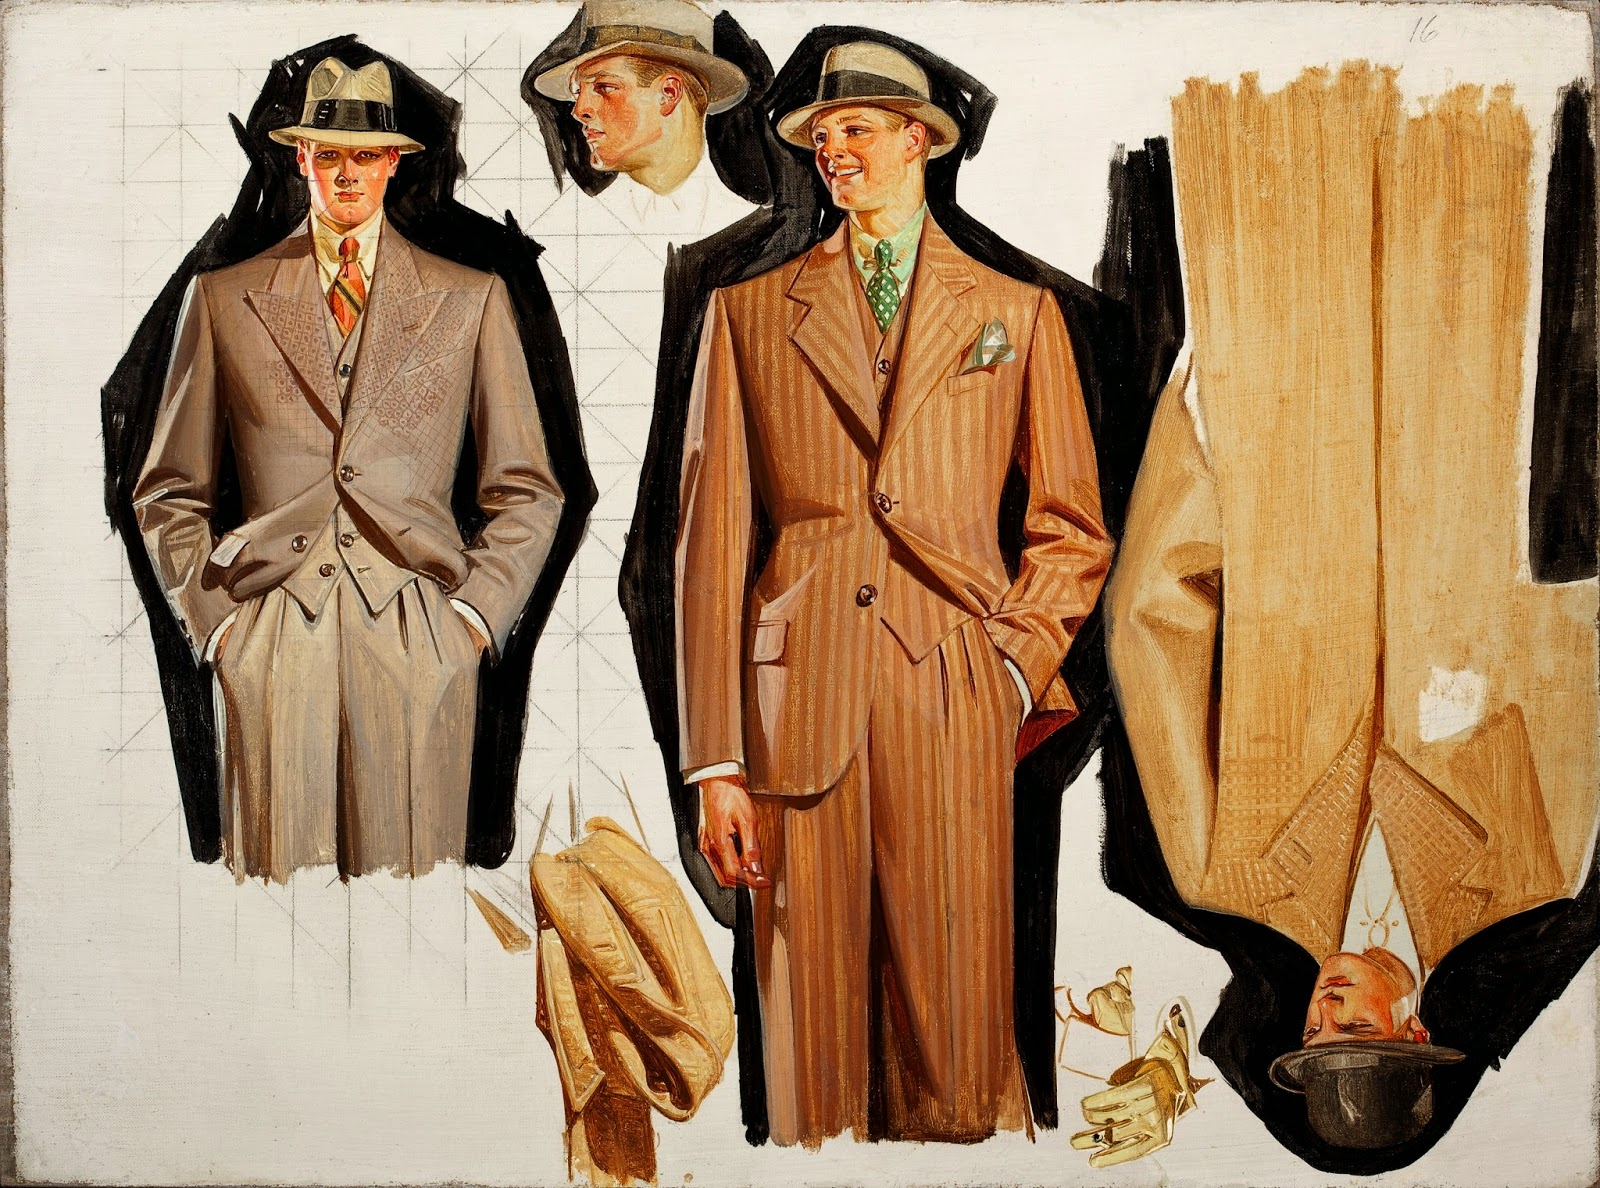 J.C. Leyendecker: The Greatest Gay Artist You Dont Know